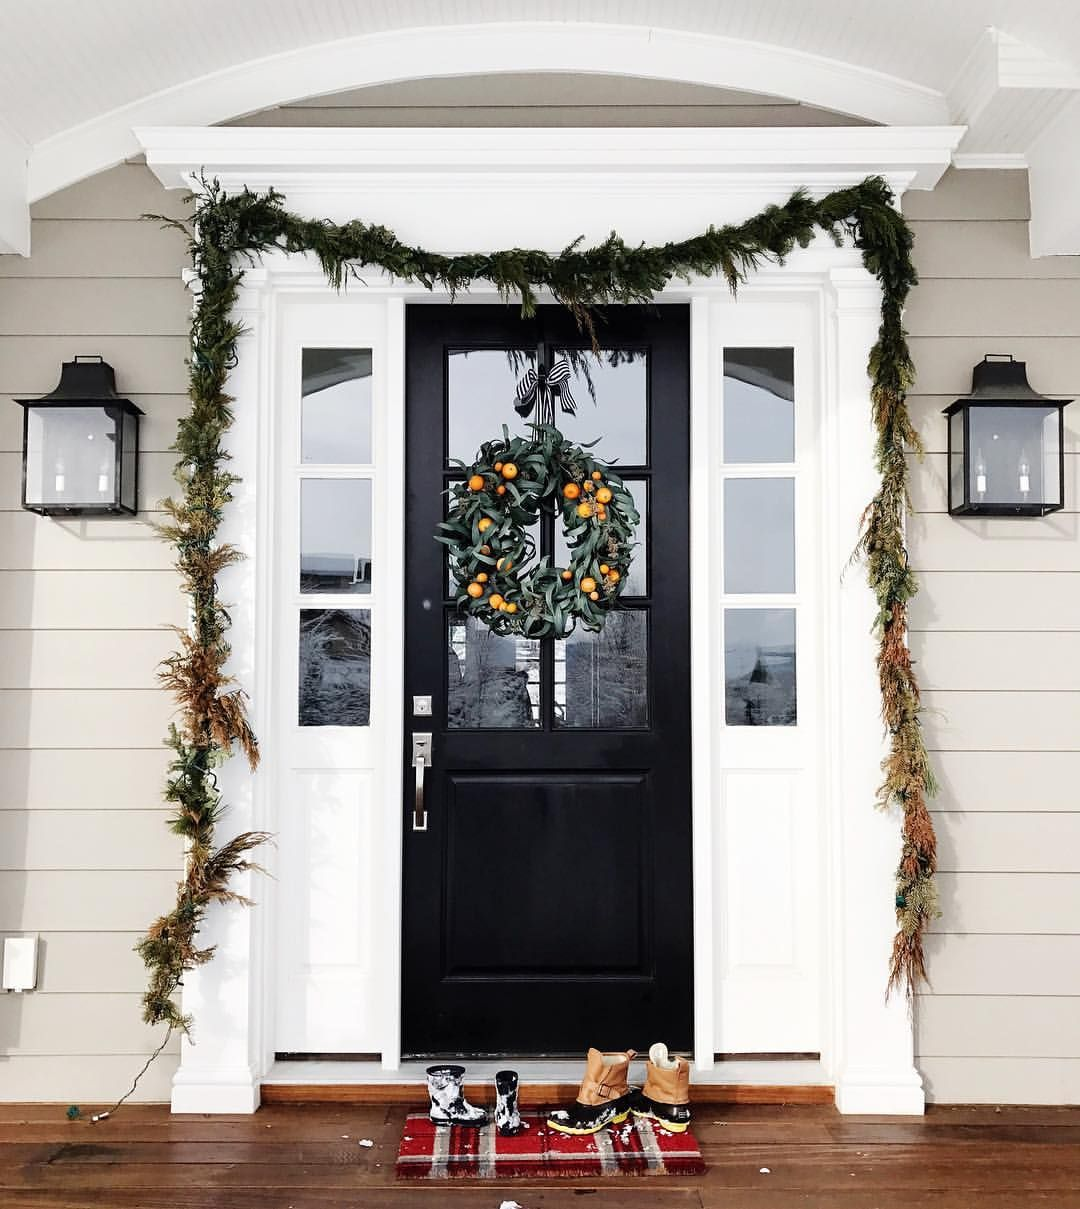 Siding is sherwin williams intellectual gray and the door is tricorn black trim is ben moore white dove lights from shades of light